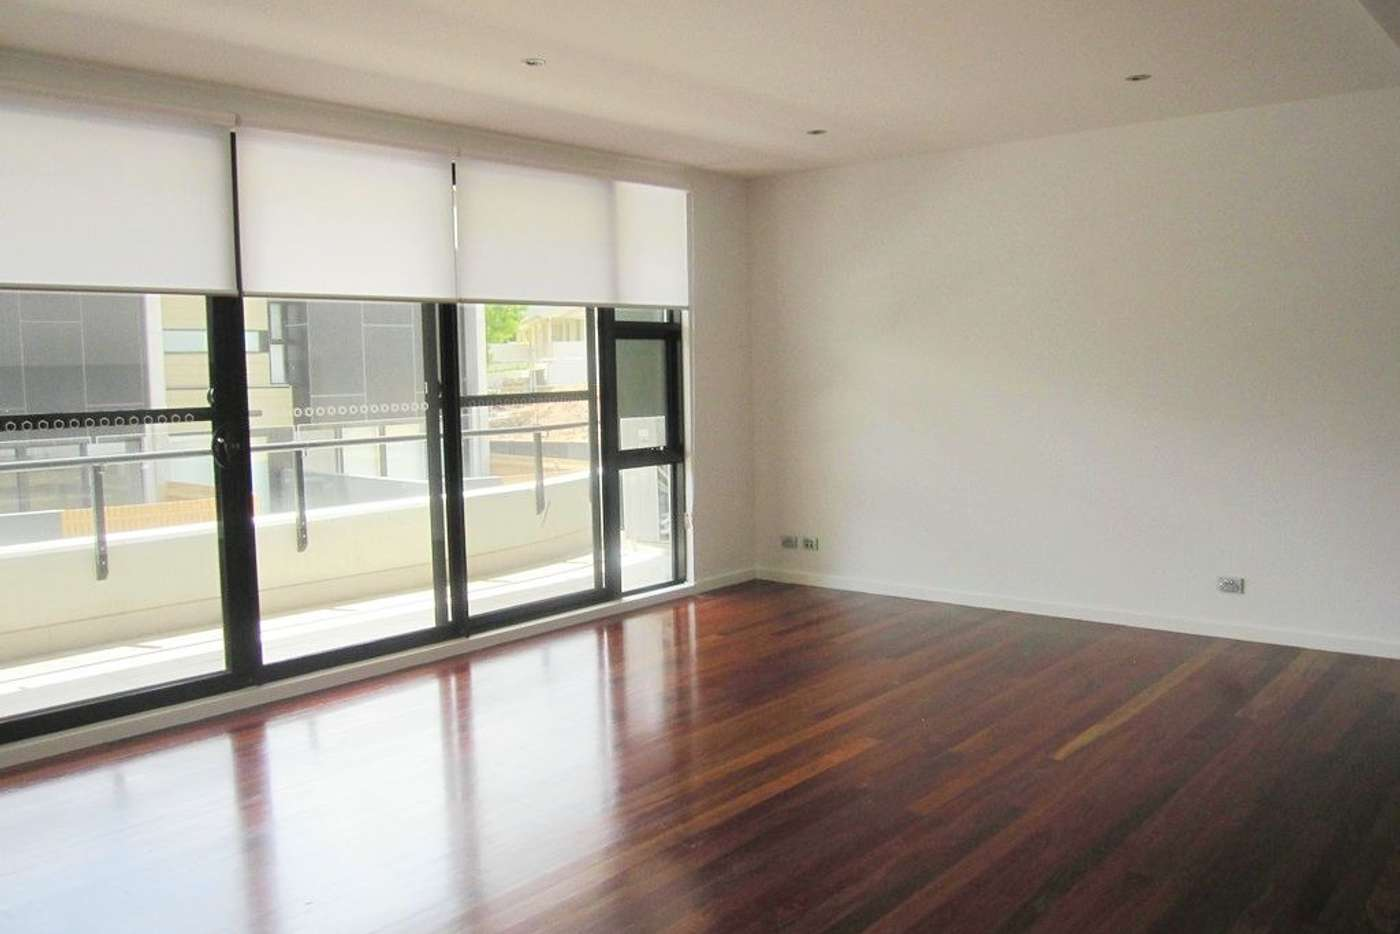 Seventh view of Homely apartment listing, 5/43 Hampton Circuit, Yarralumla ACT 2600